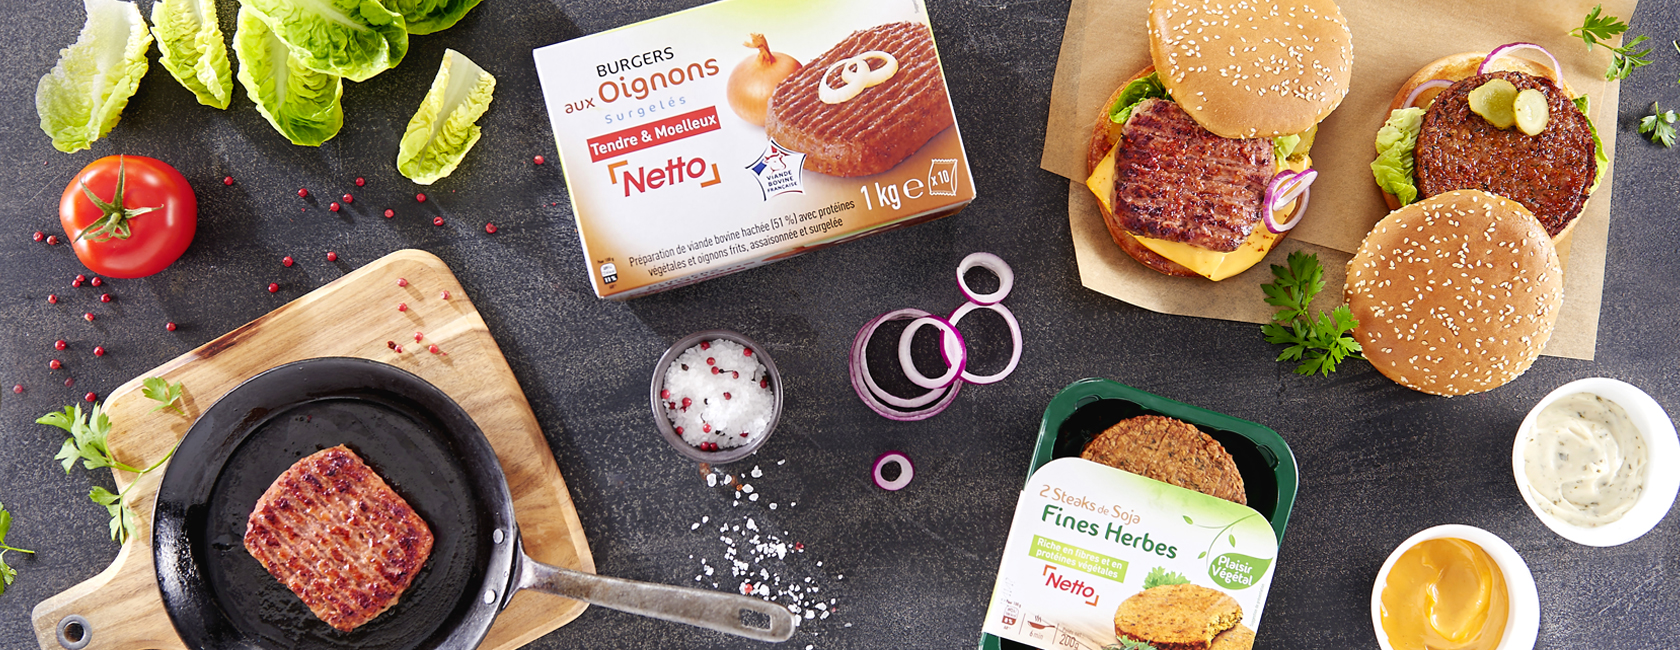 burger party Netto